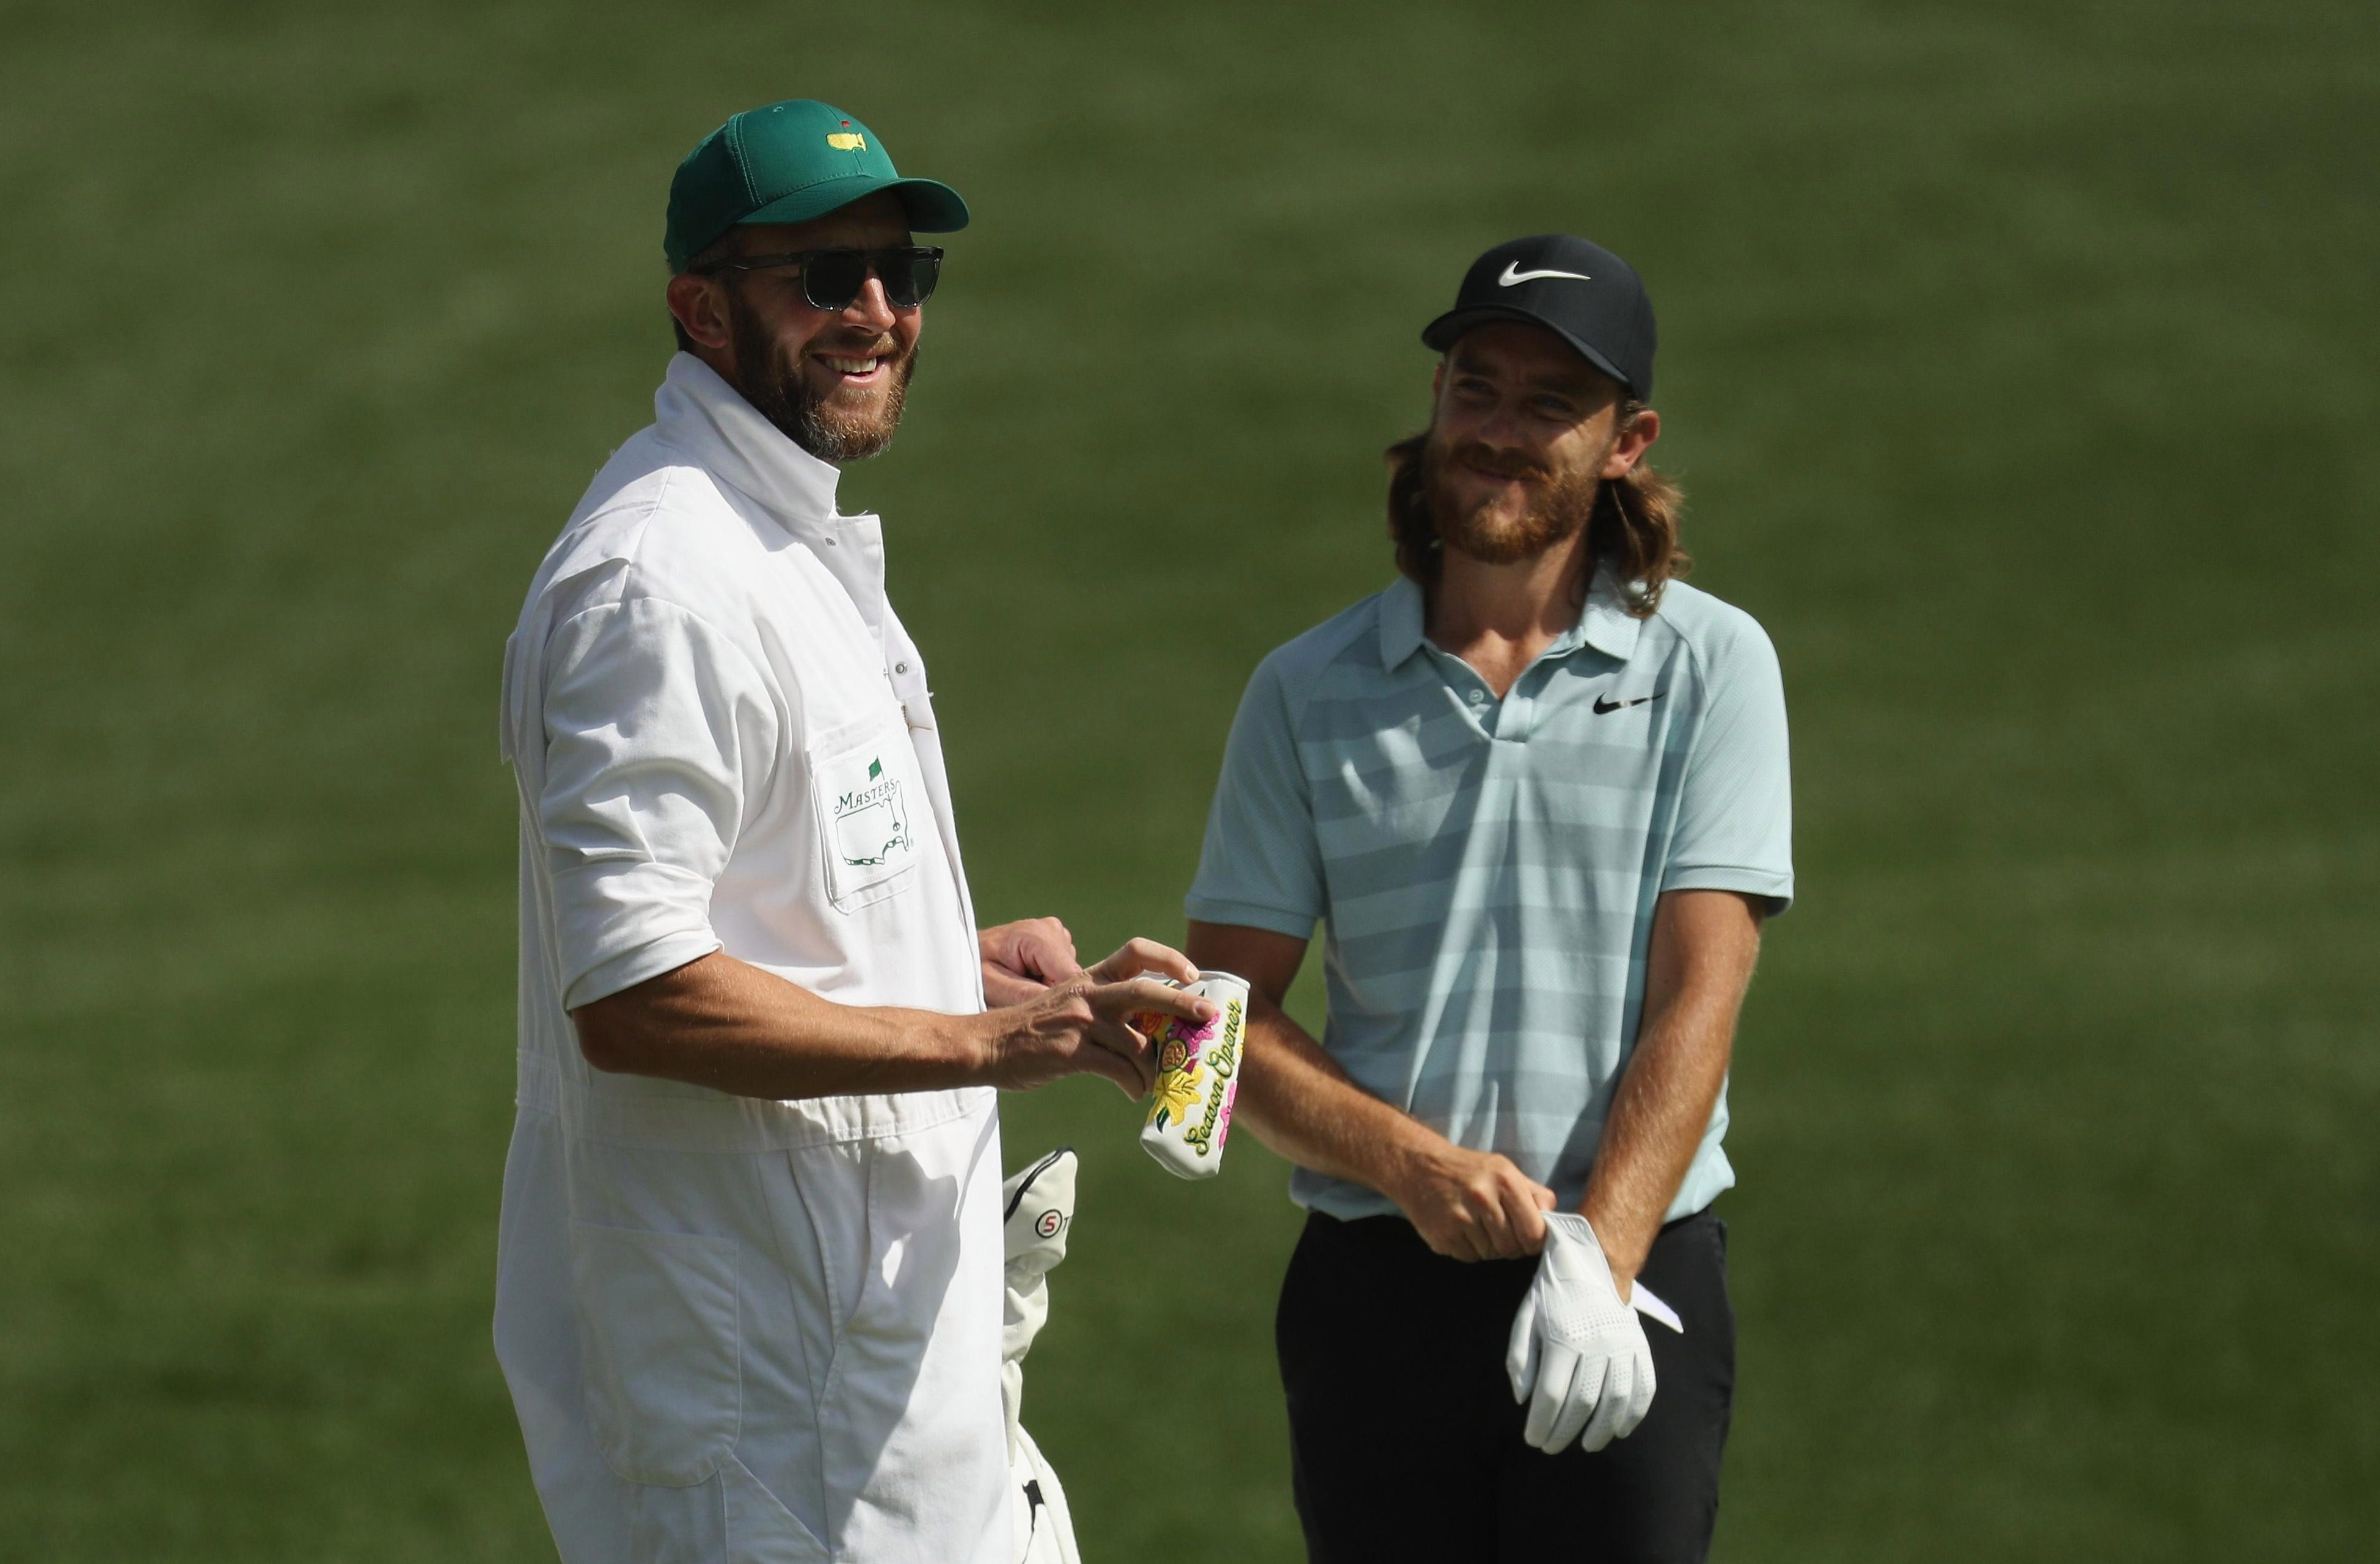 English star Tommy Fleetwood will have to cope with the interest of the galleries following Tiger Woods